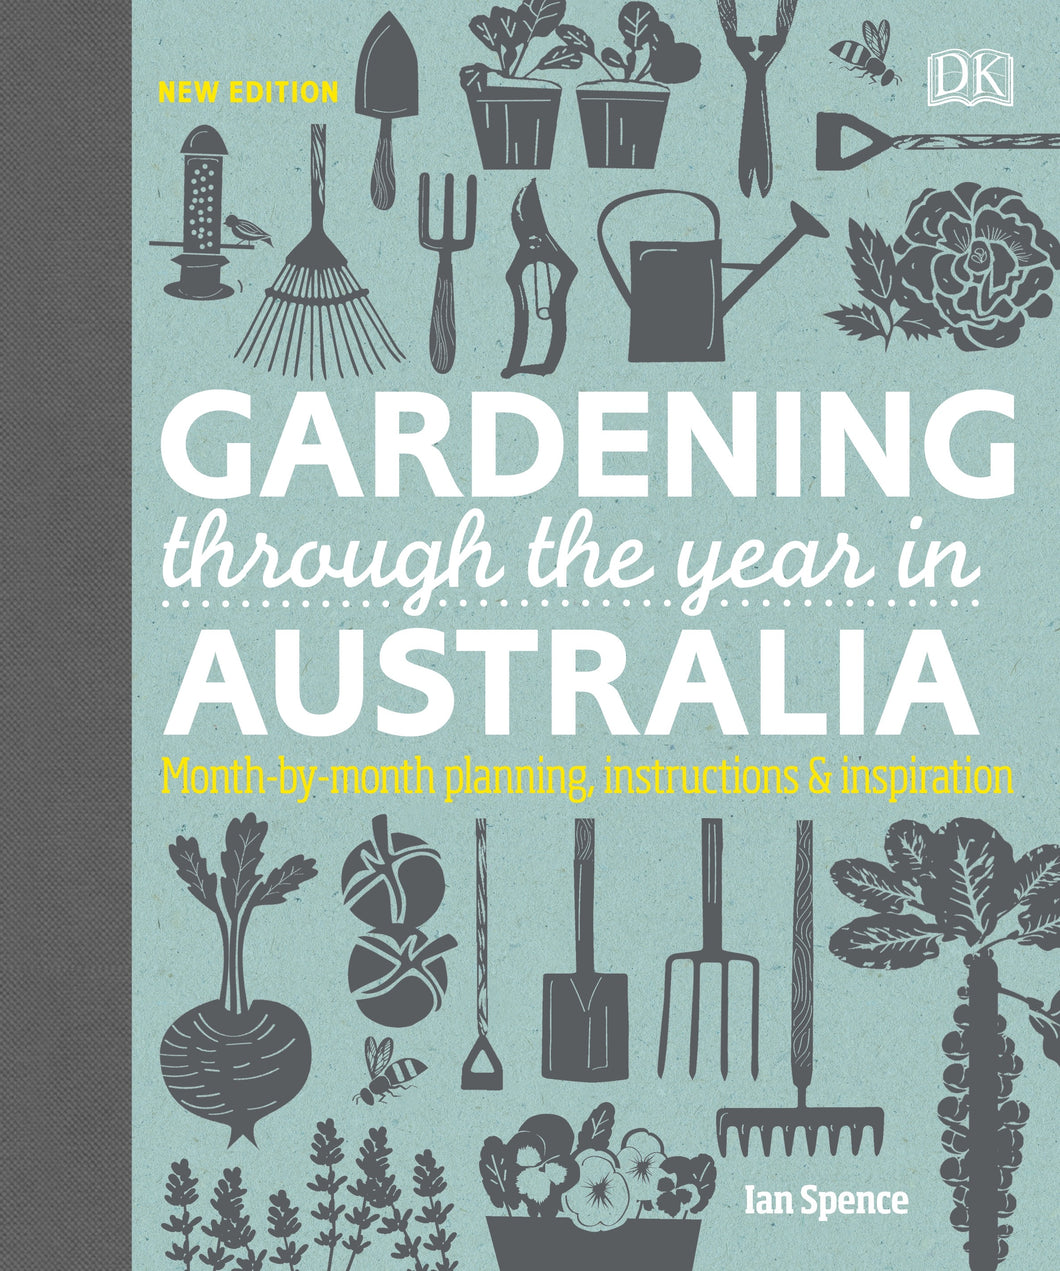 DK Gardening Through the Year in Australia by Ian Spence